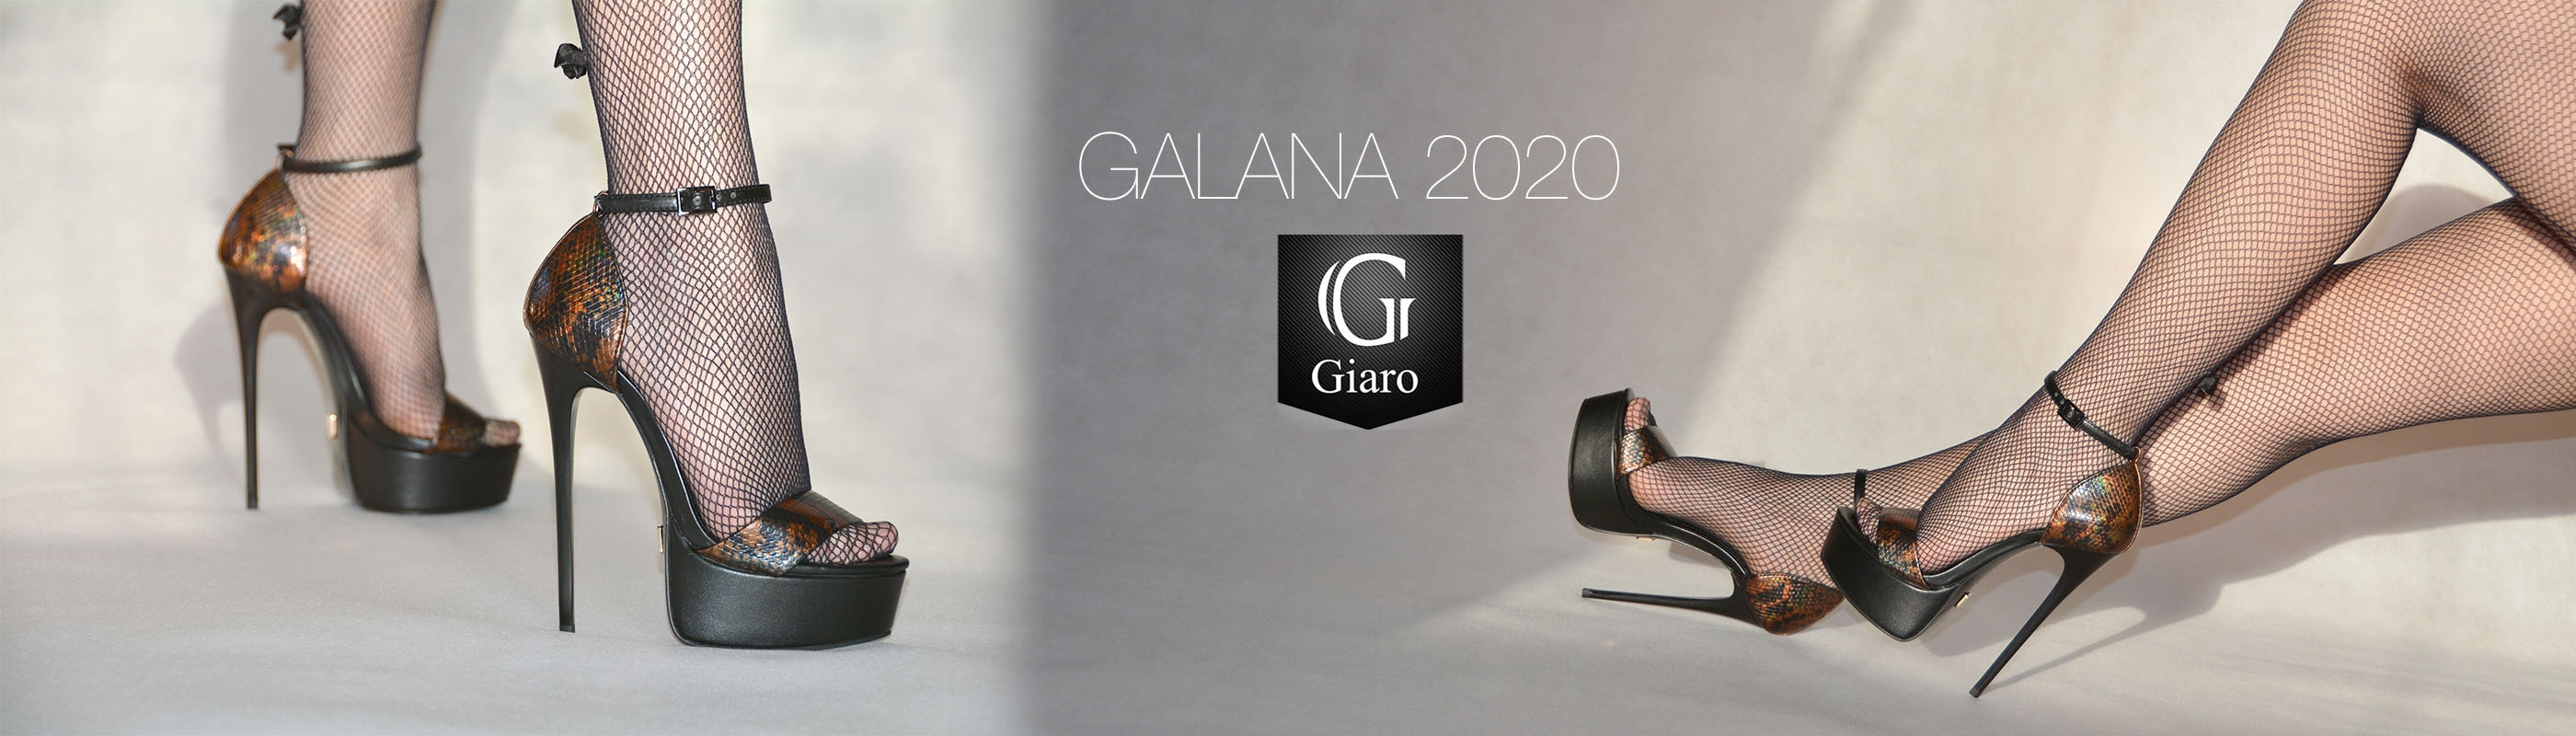 The new Giaro Galana Profile collection and new Galana 2020 models